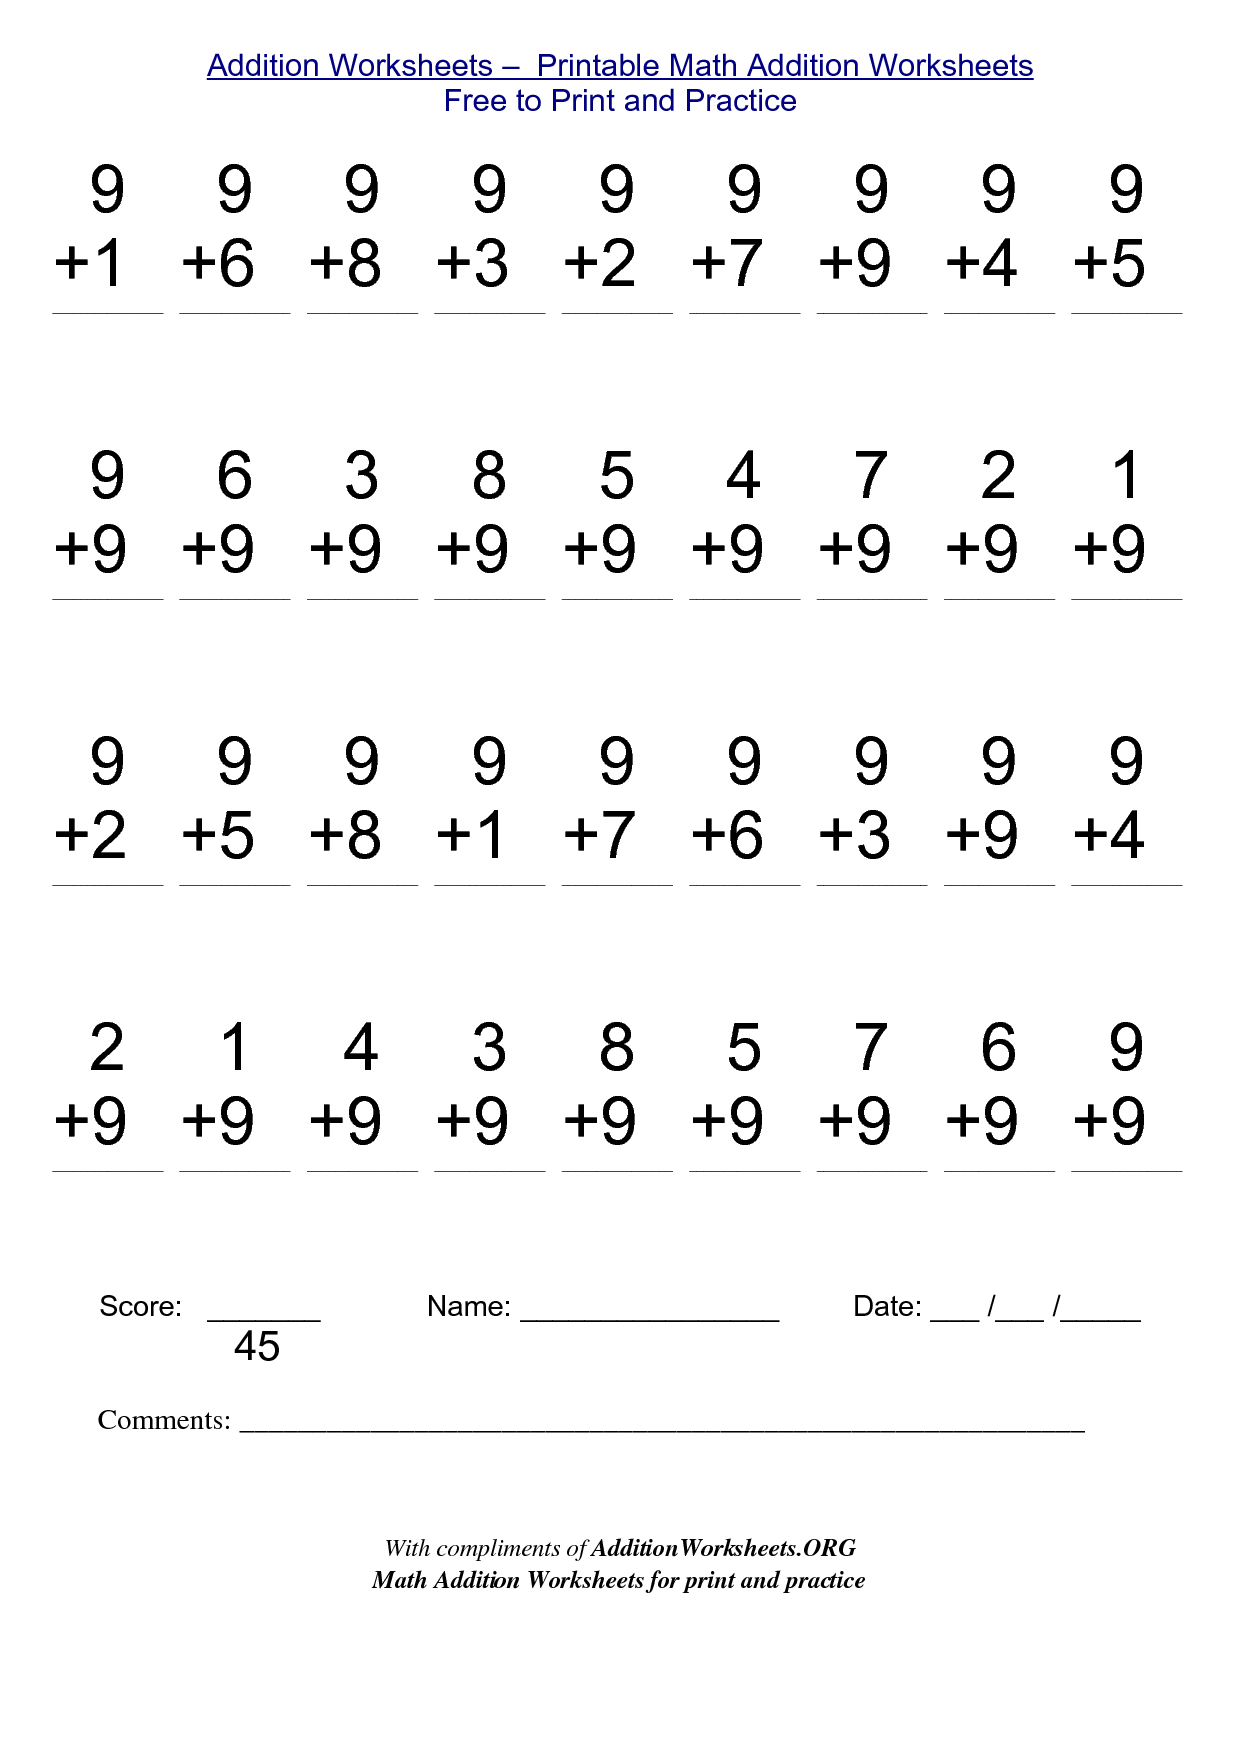 Worksheets Free Printable Addition Worksheets 2nd grade stuff to print addition worksheets printable math free print